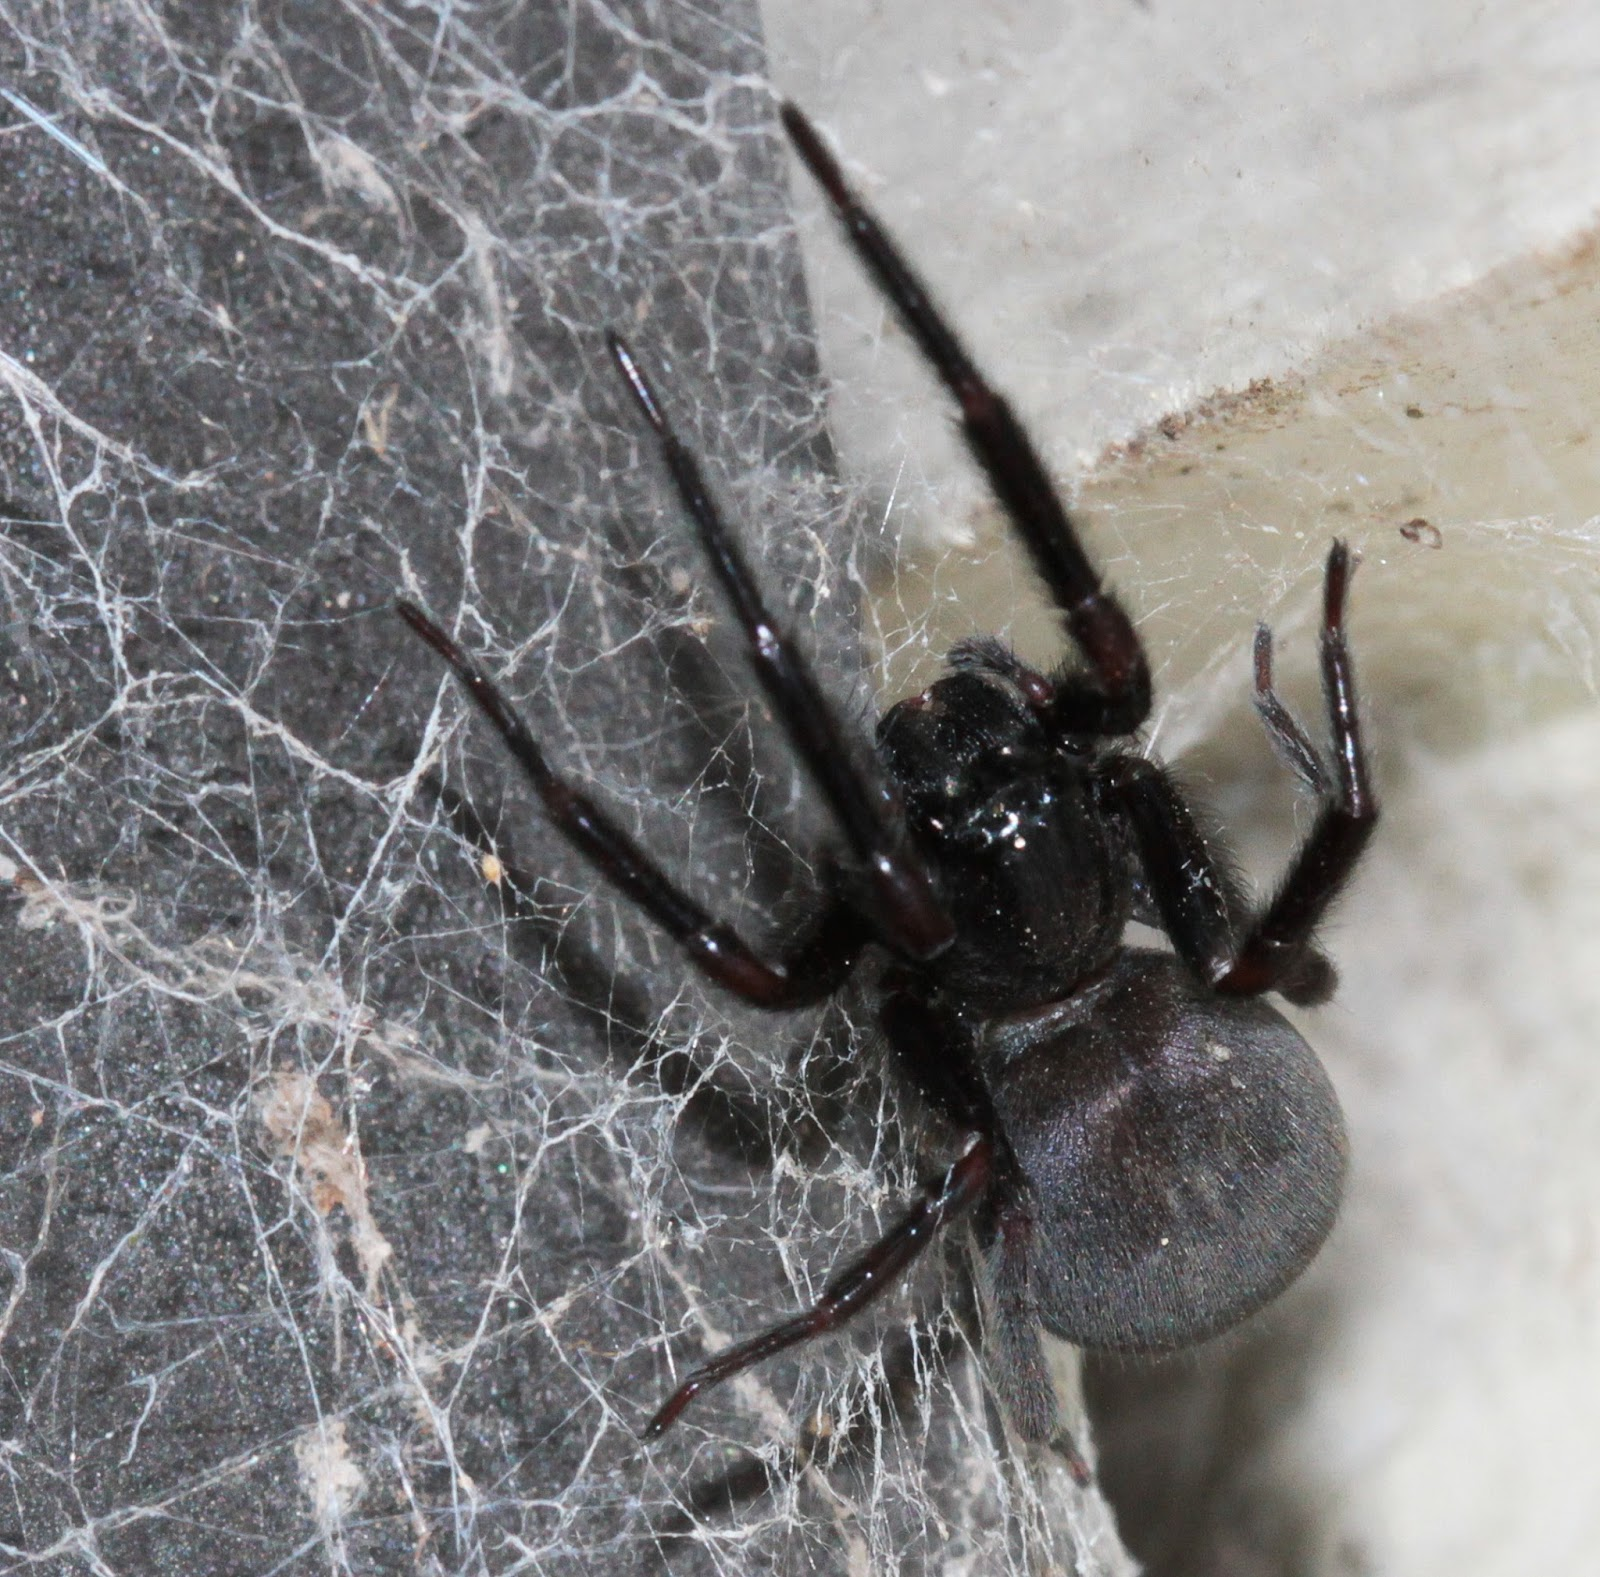 Spider Web Halloween Decorations: The Spiderblogger: I Always Love The Black House Spiders